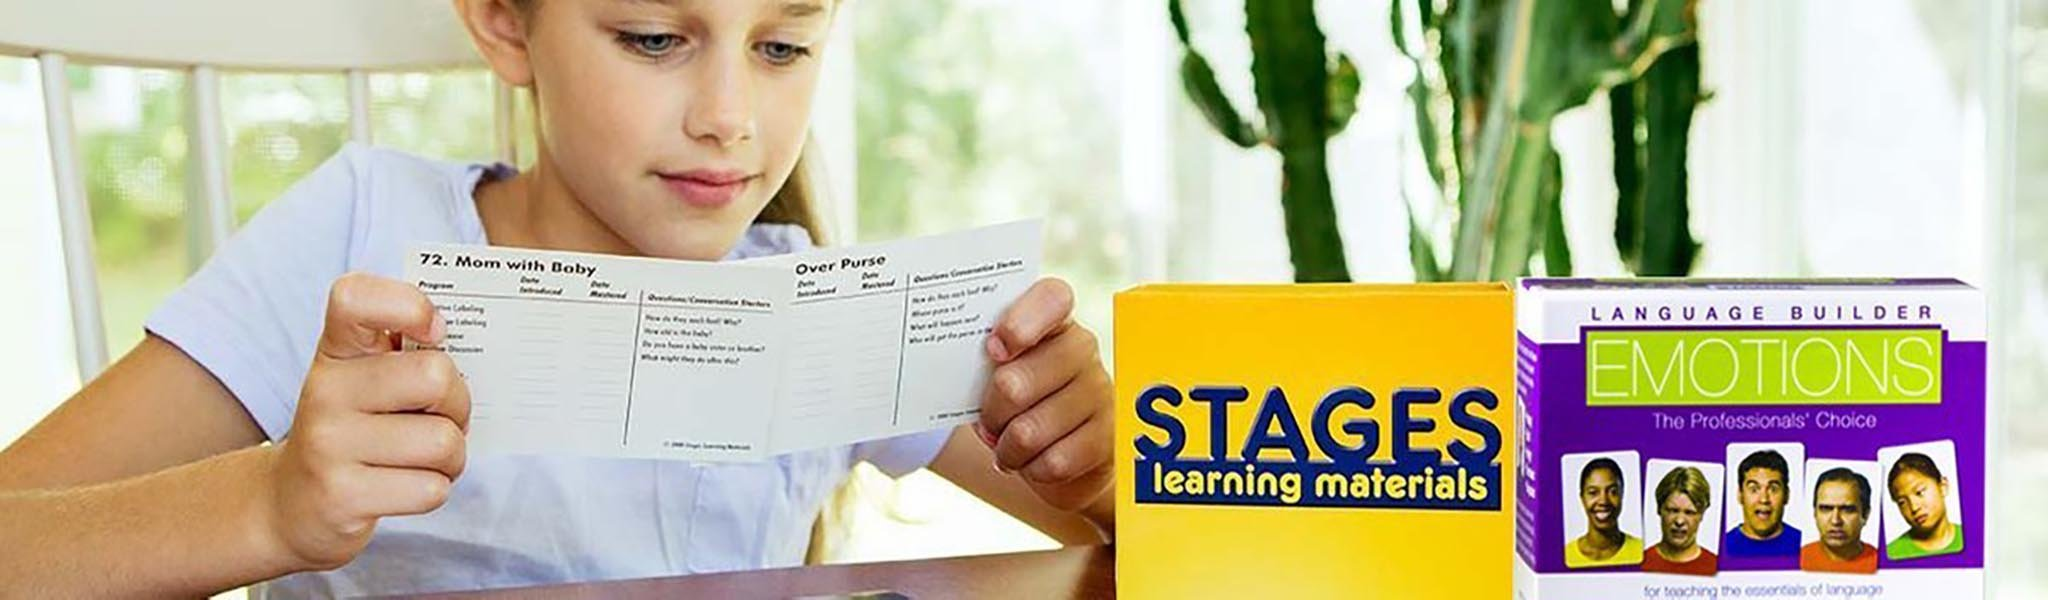 Girl looking at flashcards with set of Language Builder Emotion Cards in the forefront